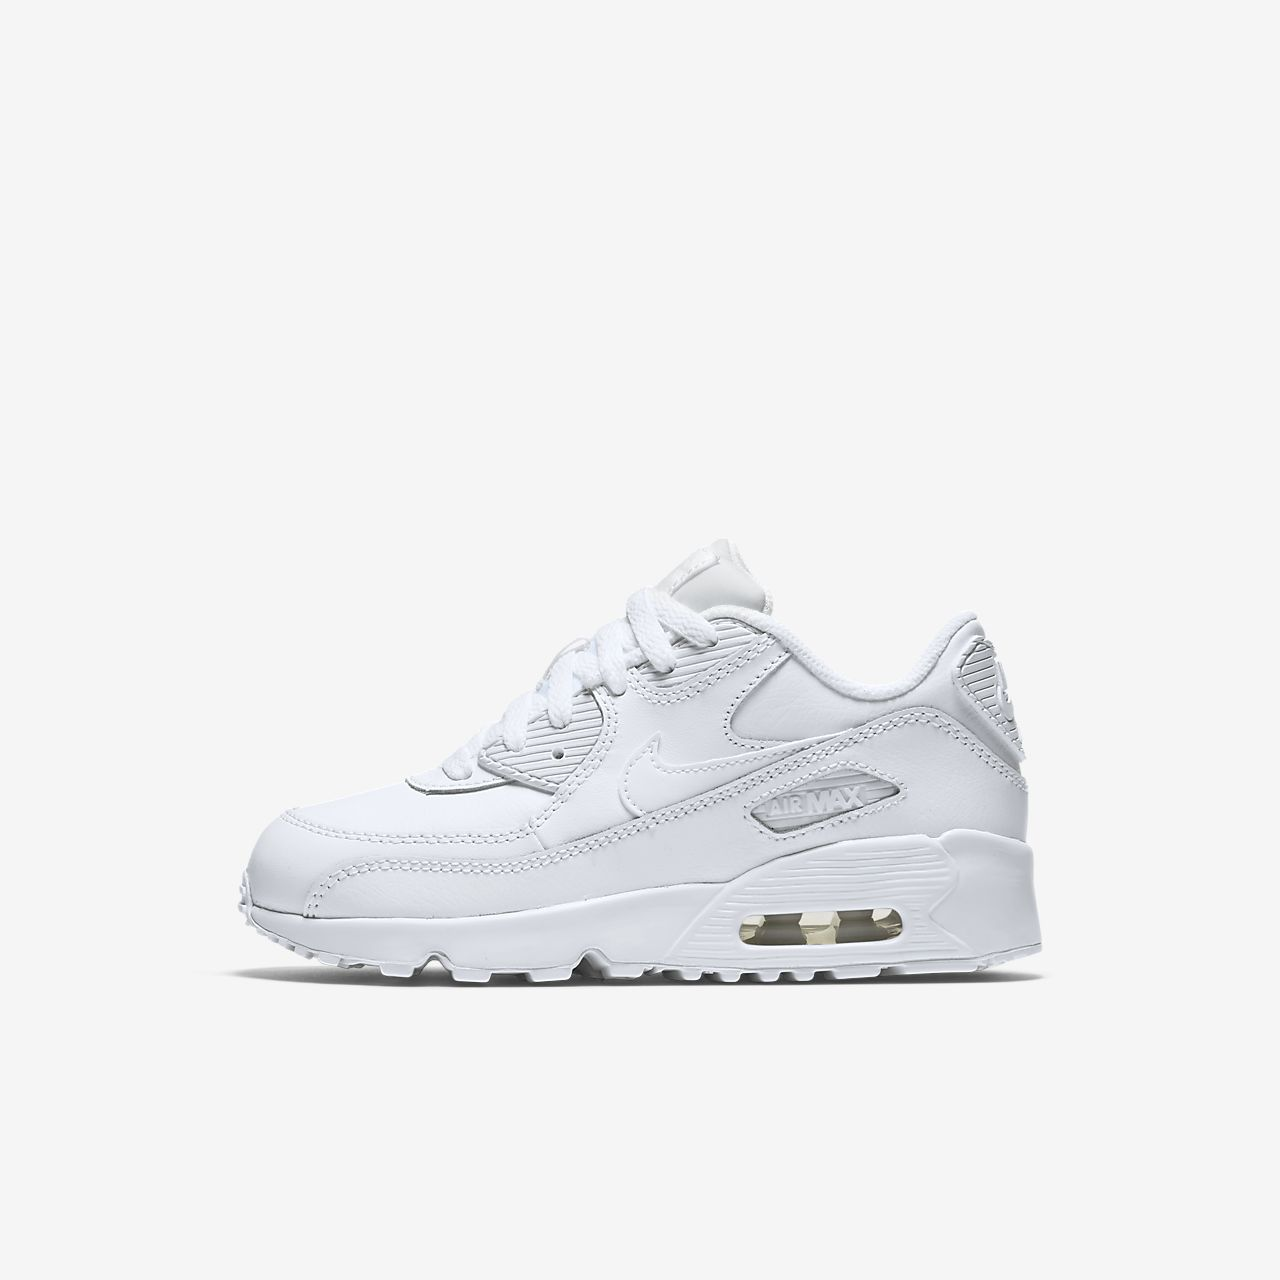 nike air max 90 leather uomo bianche